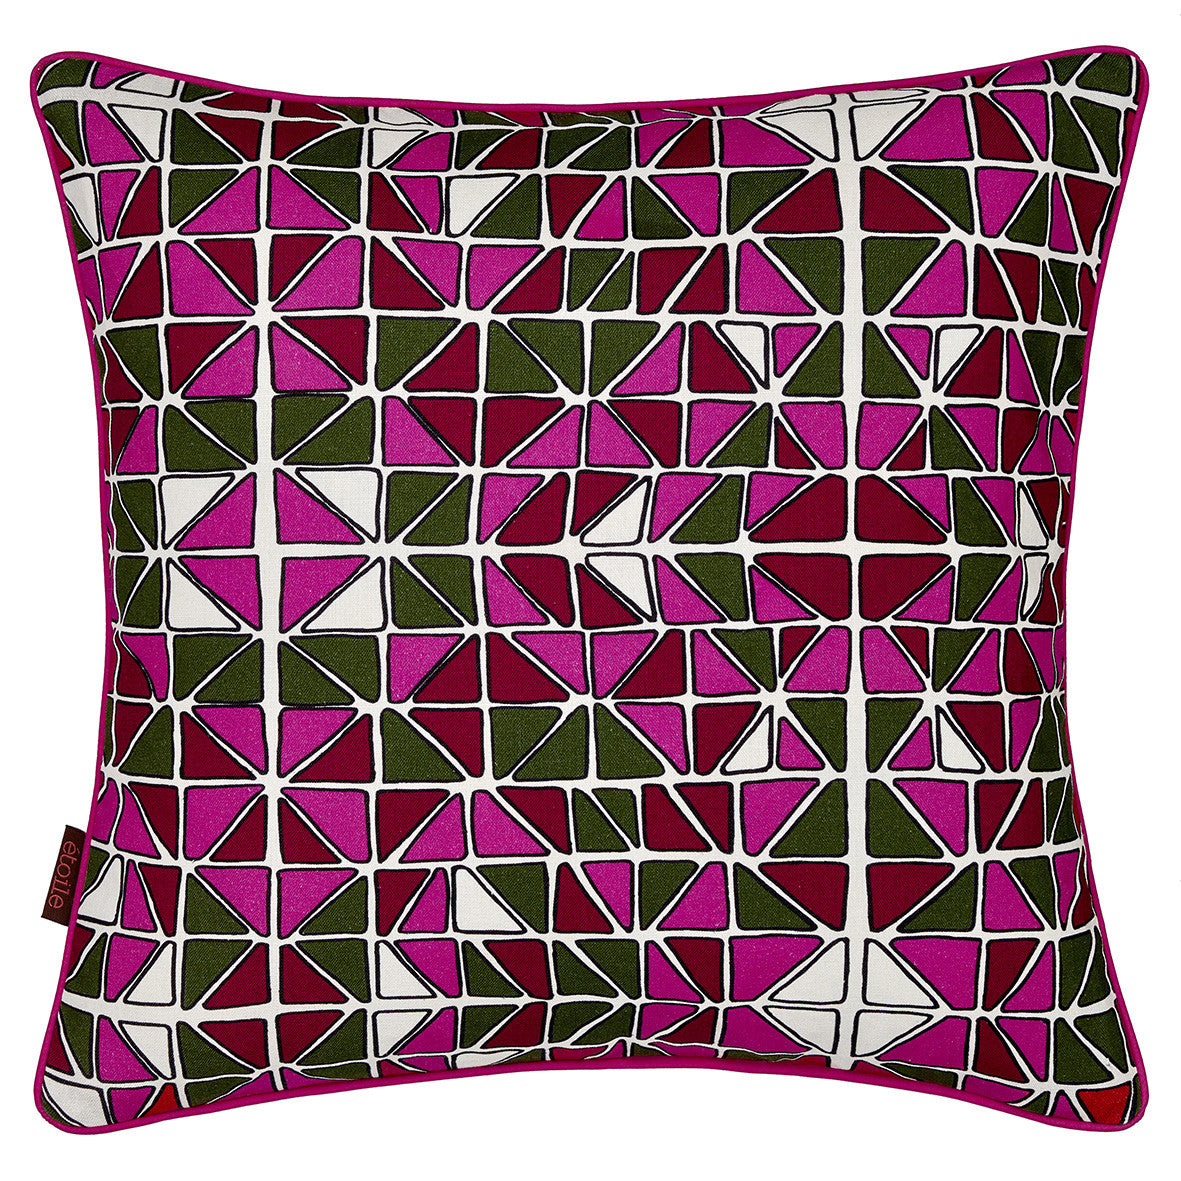 Mosaic Patterned Printed Linen Union Cushion in Fuchsia Pink, Olive Green and Vermilion Red